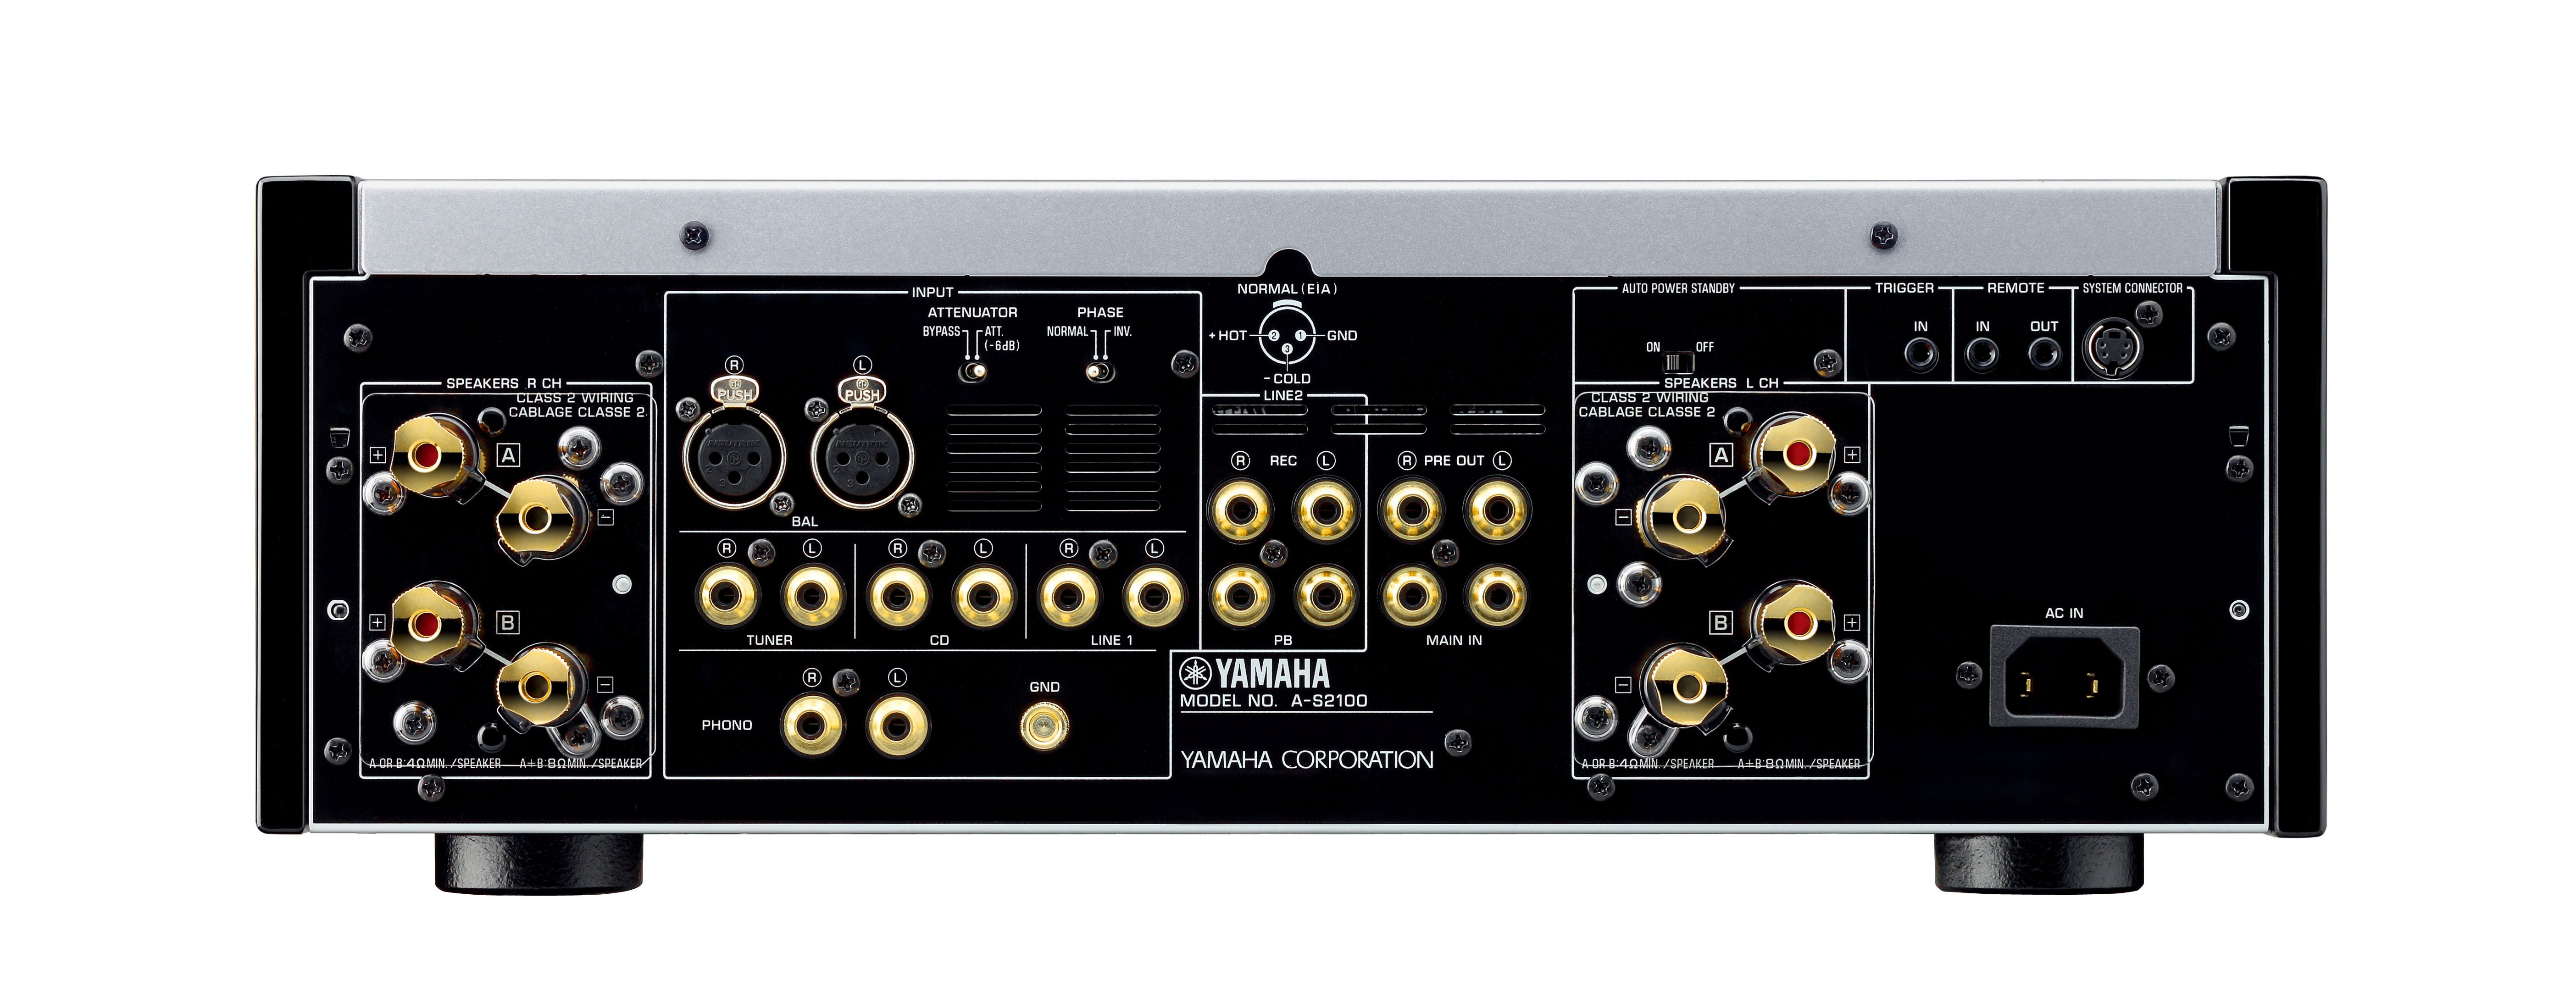 A-S2100 - Overview - Hi-Fi Components - Audio & Visual - Products